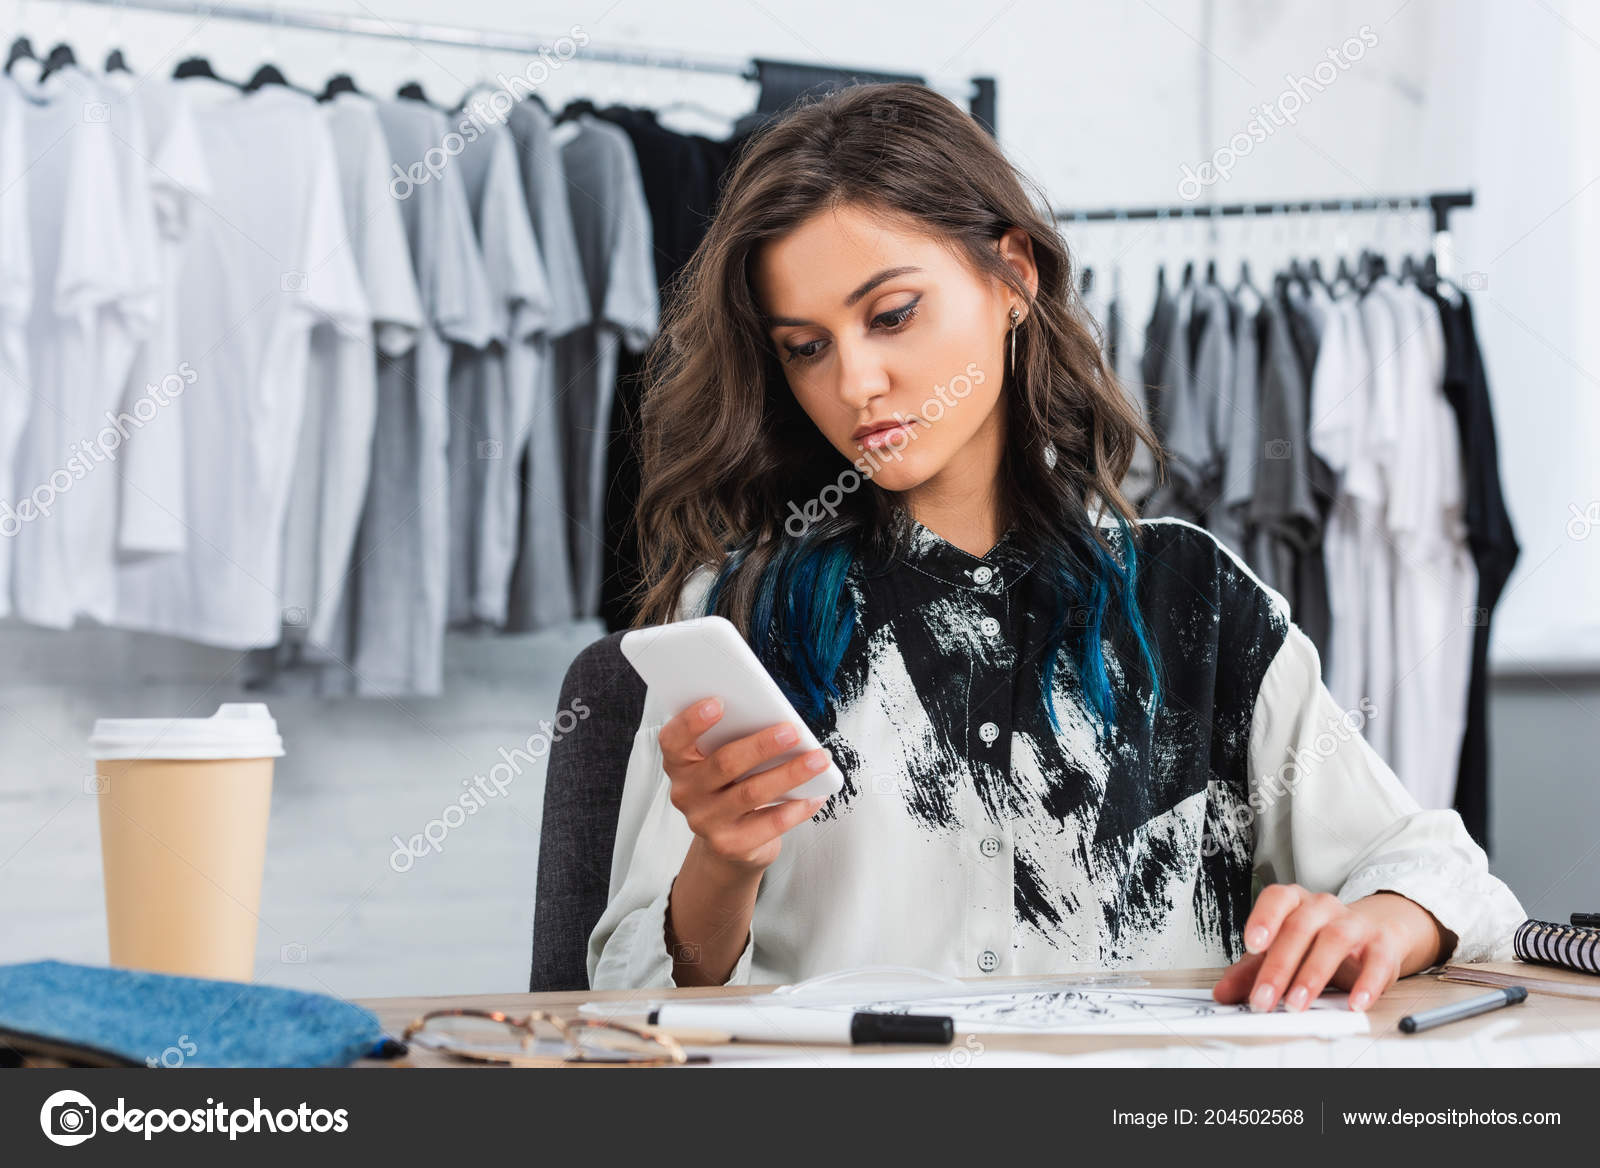 Attractive Young Female Designer Using Smartphone Working Table Clothing Design Stock Photo C Andrewlozovyi 204502568